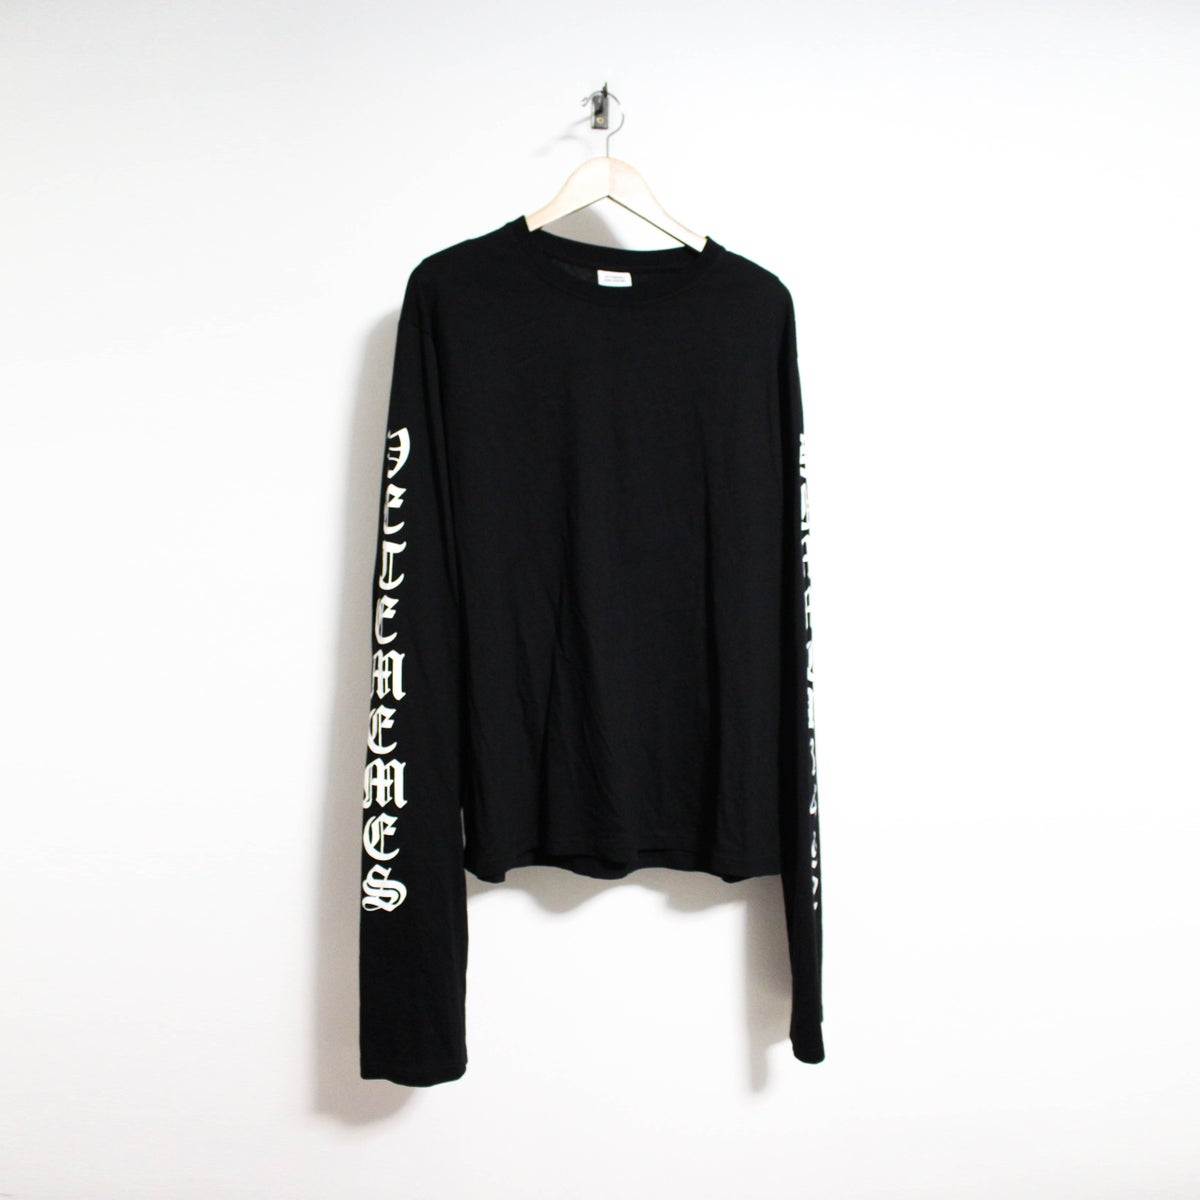 Image of Black Long Sleeve Shirt